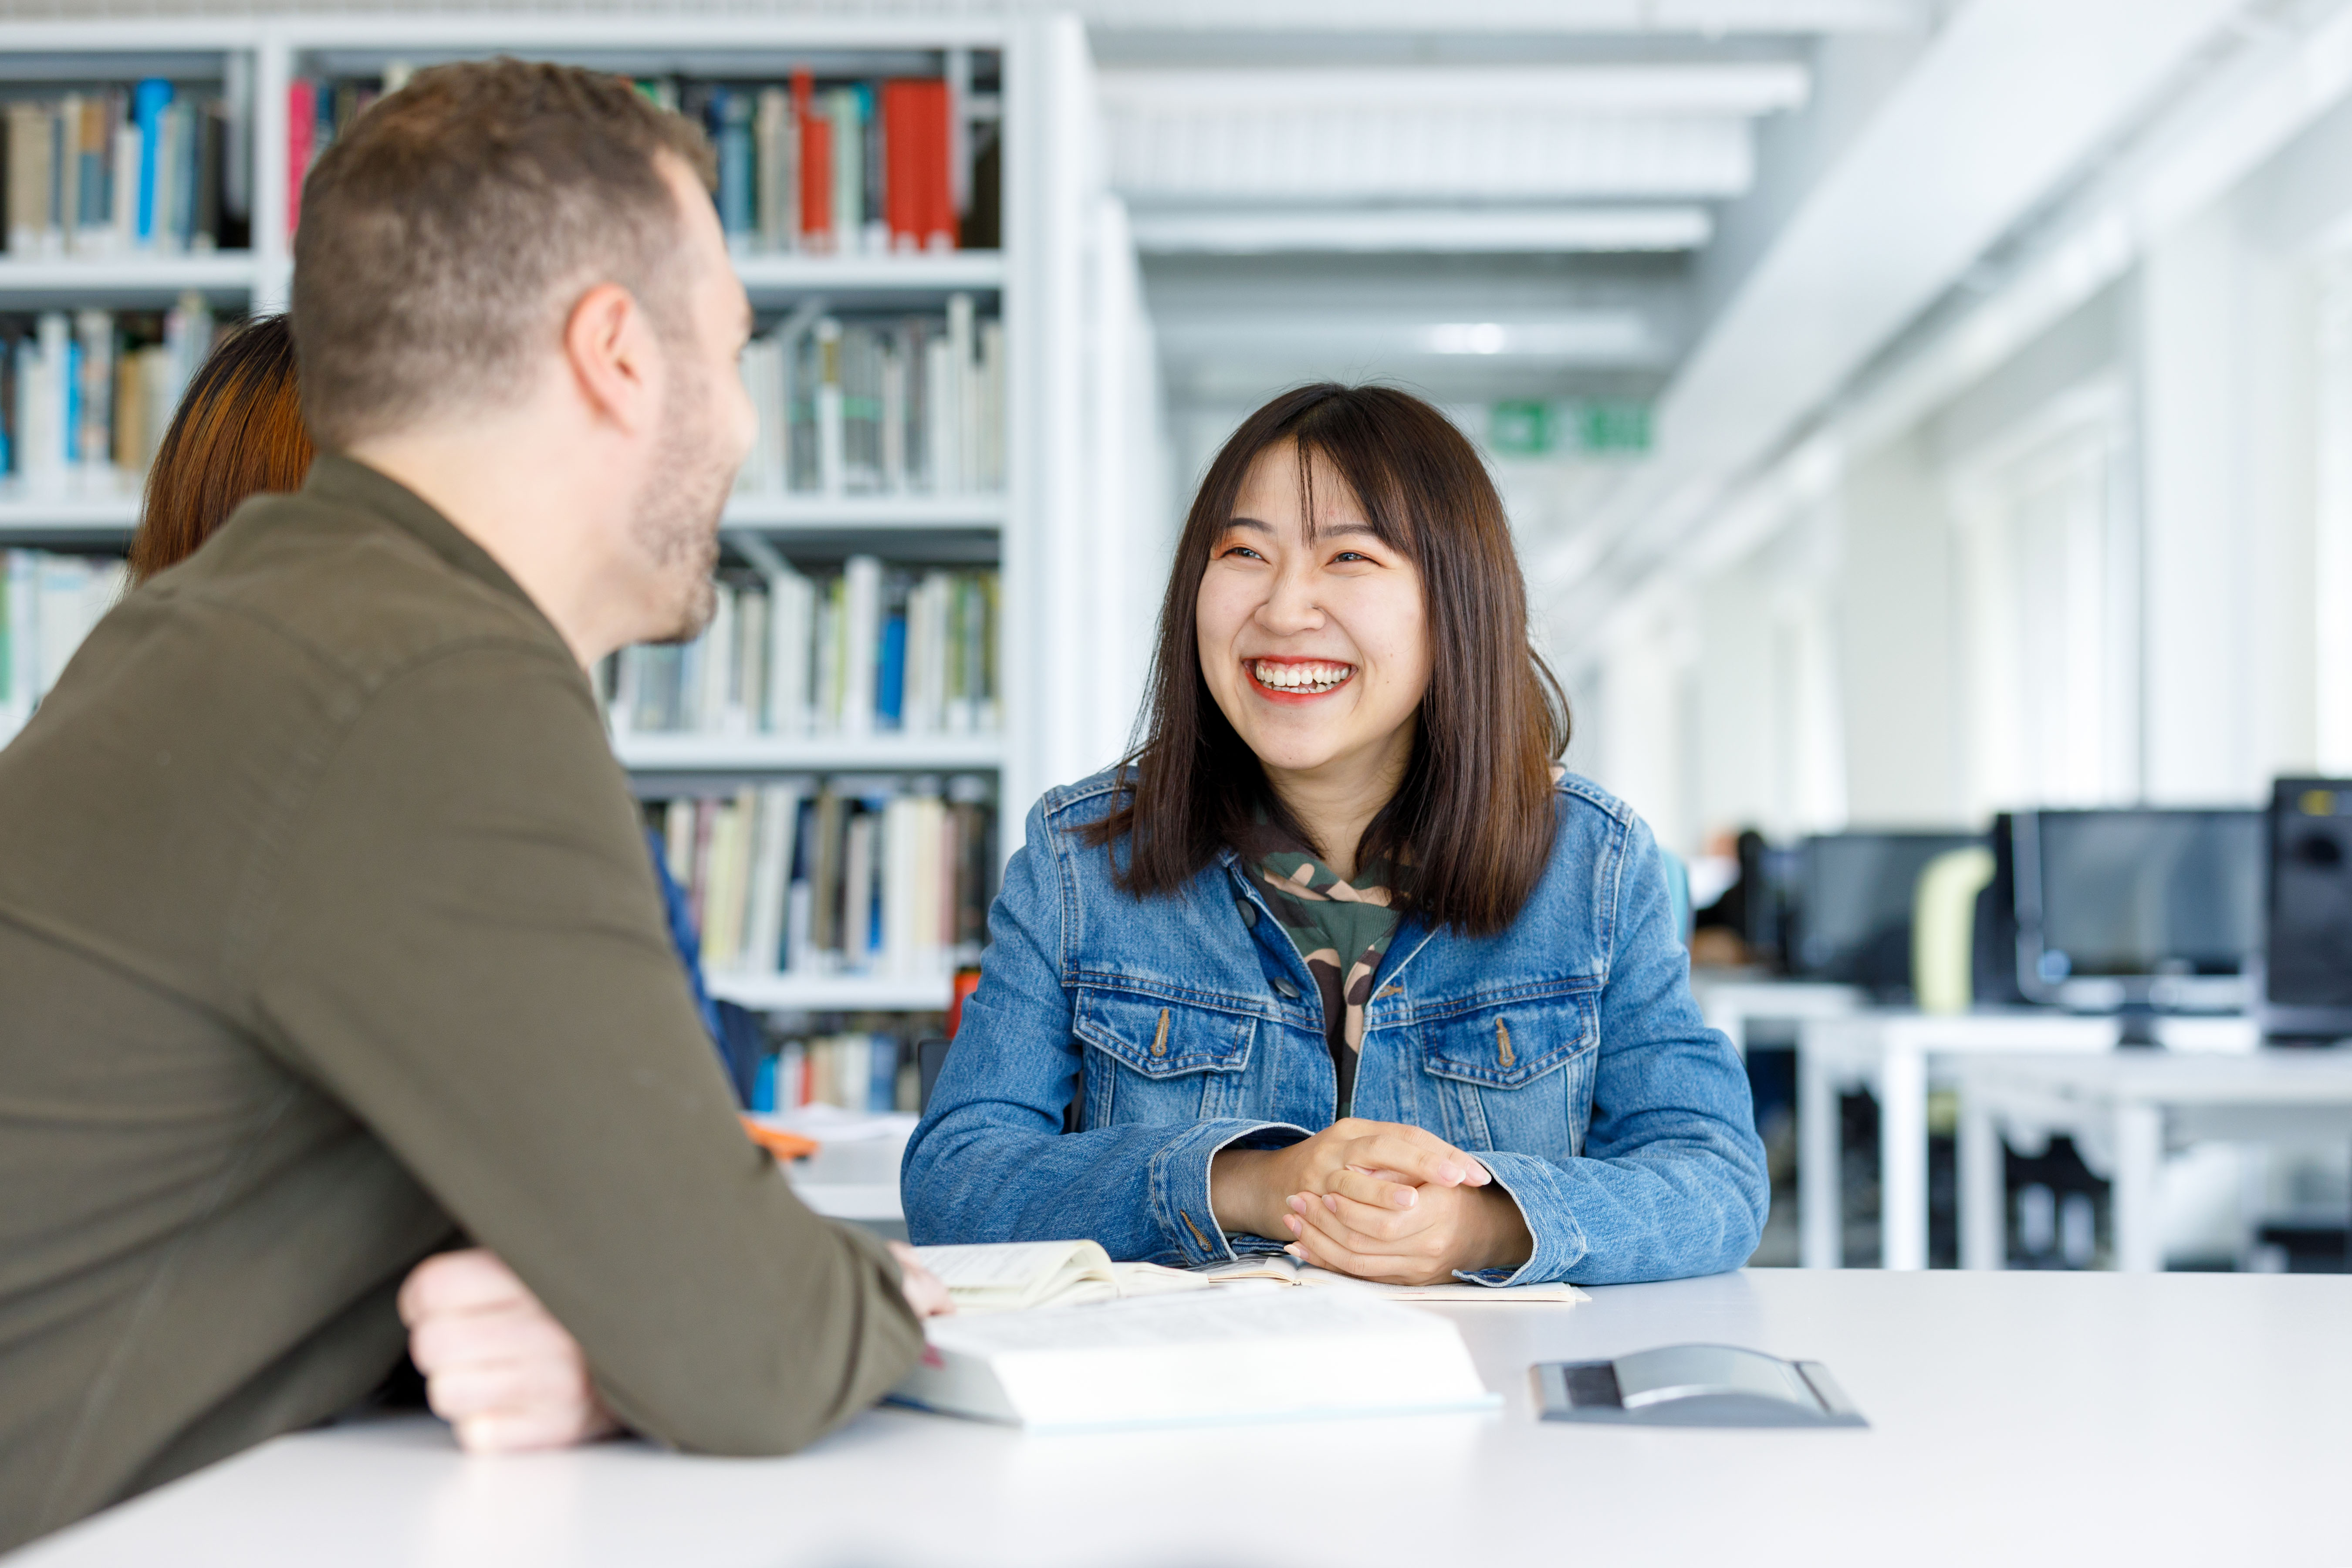 Chinese and European students discussing and studying in the library